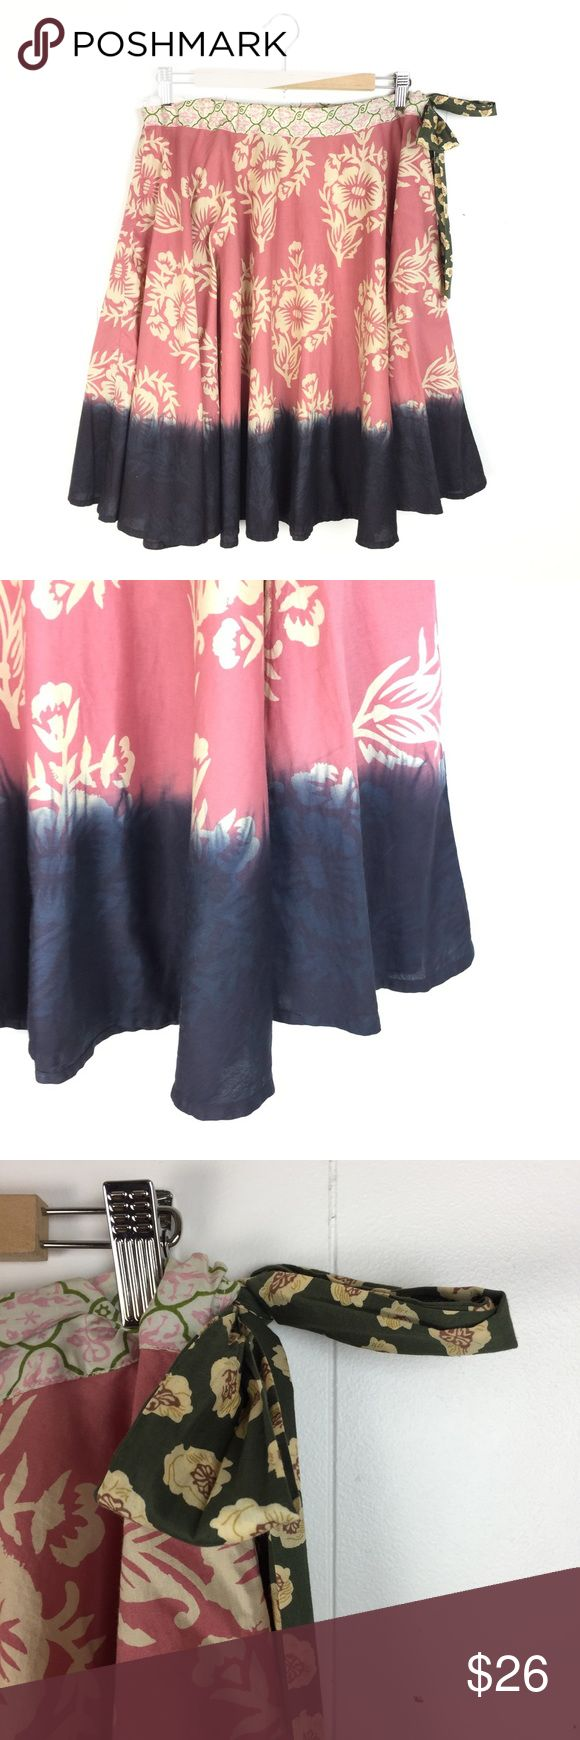 """Hoss Intropia Boho Floral Print Dip Dye Skirt / 36 Hoss Intropia a line skirt. Mixed Floral patterns with dip dye hem. Pull Gathered waist with elastic and side tie. Very good condition. Size 36, which is about a US 4. Apx 23 1/2"""" long. 15"""" waist flat. Anthropologie Skirts A-Line or Full"""